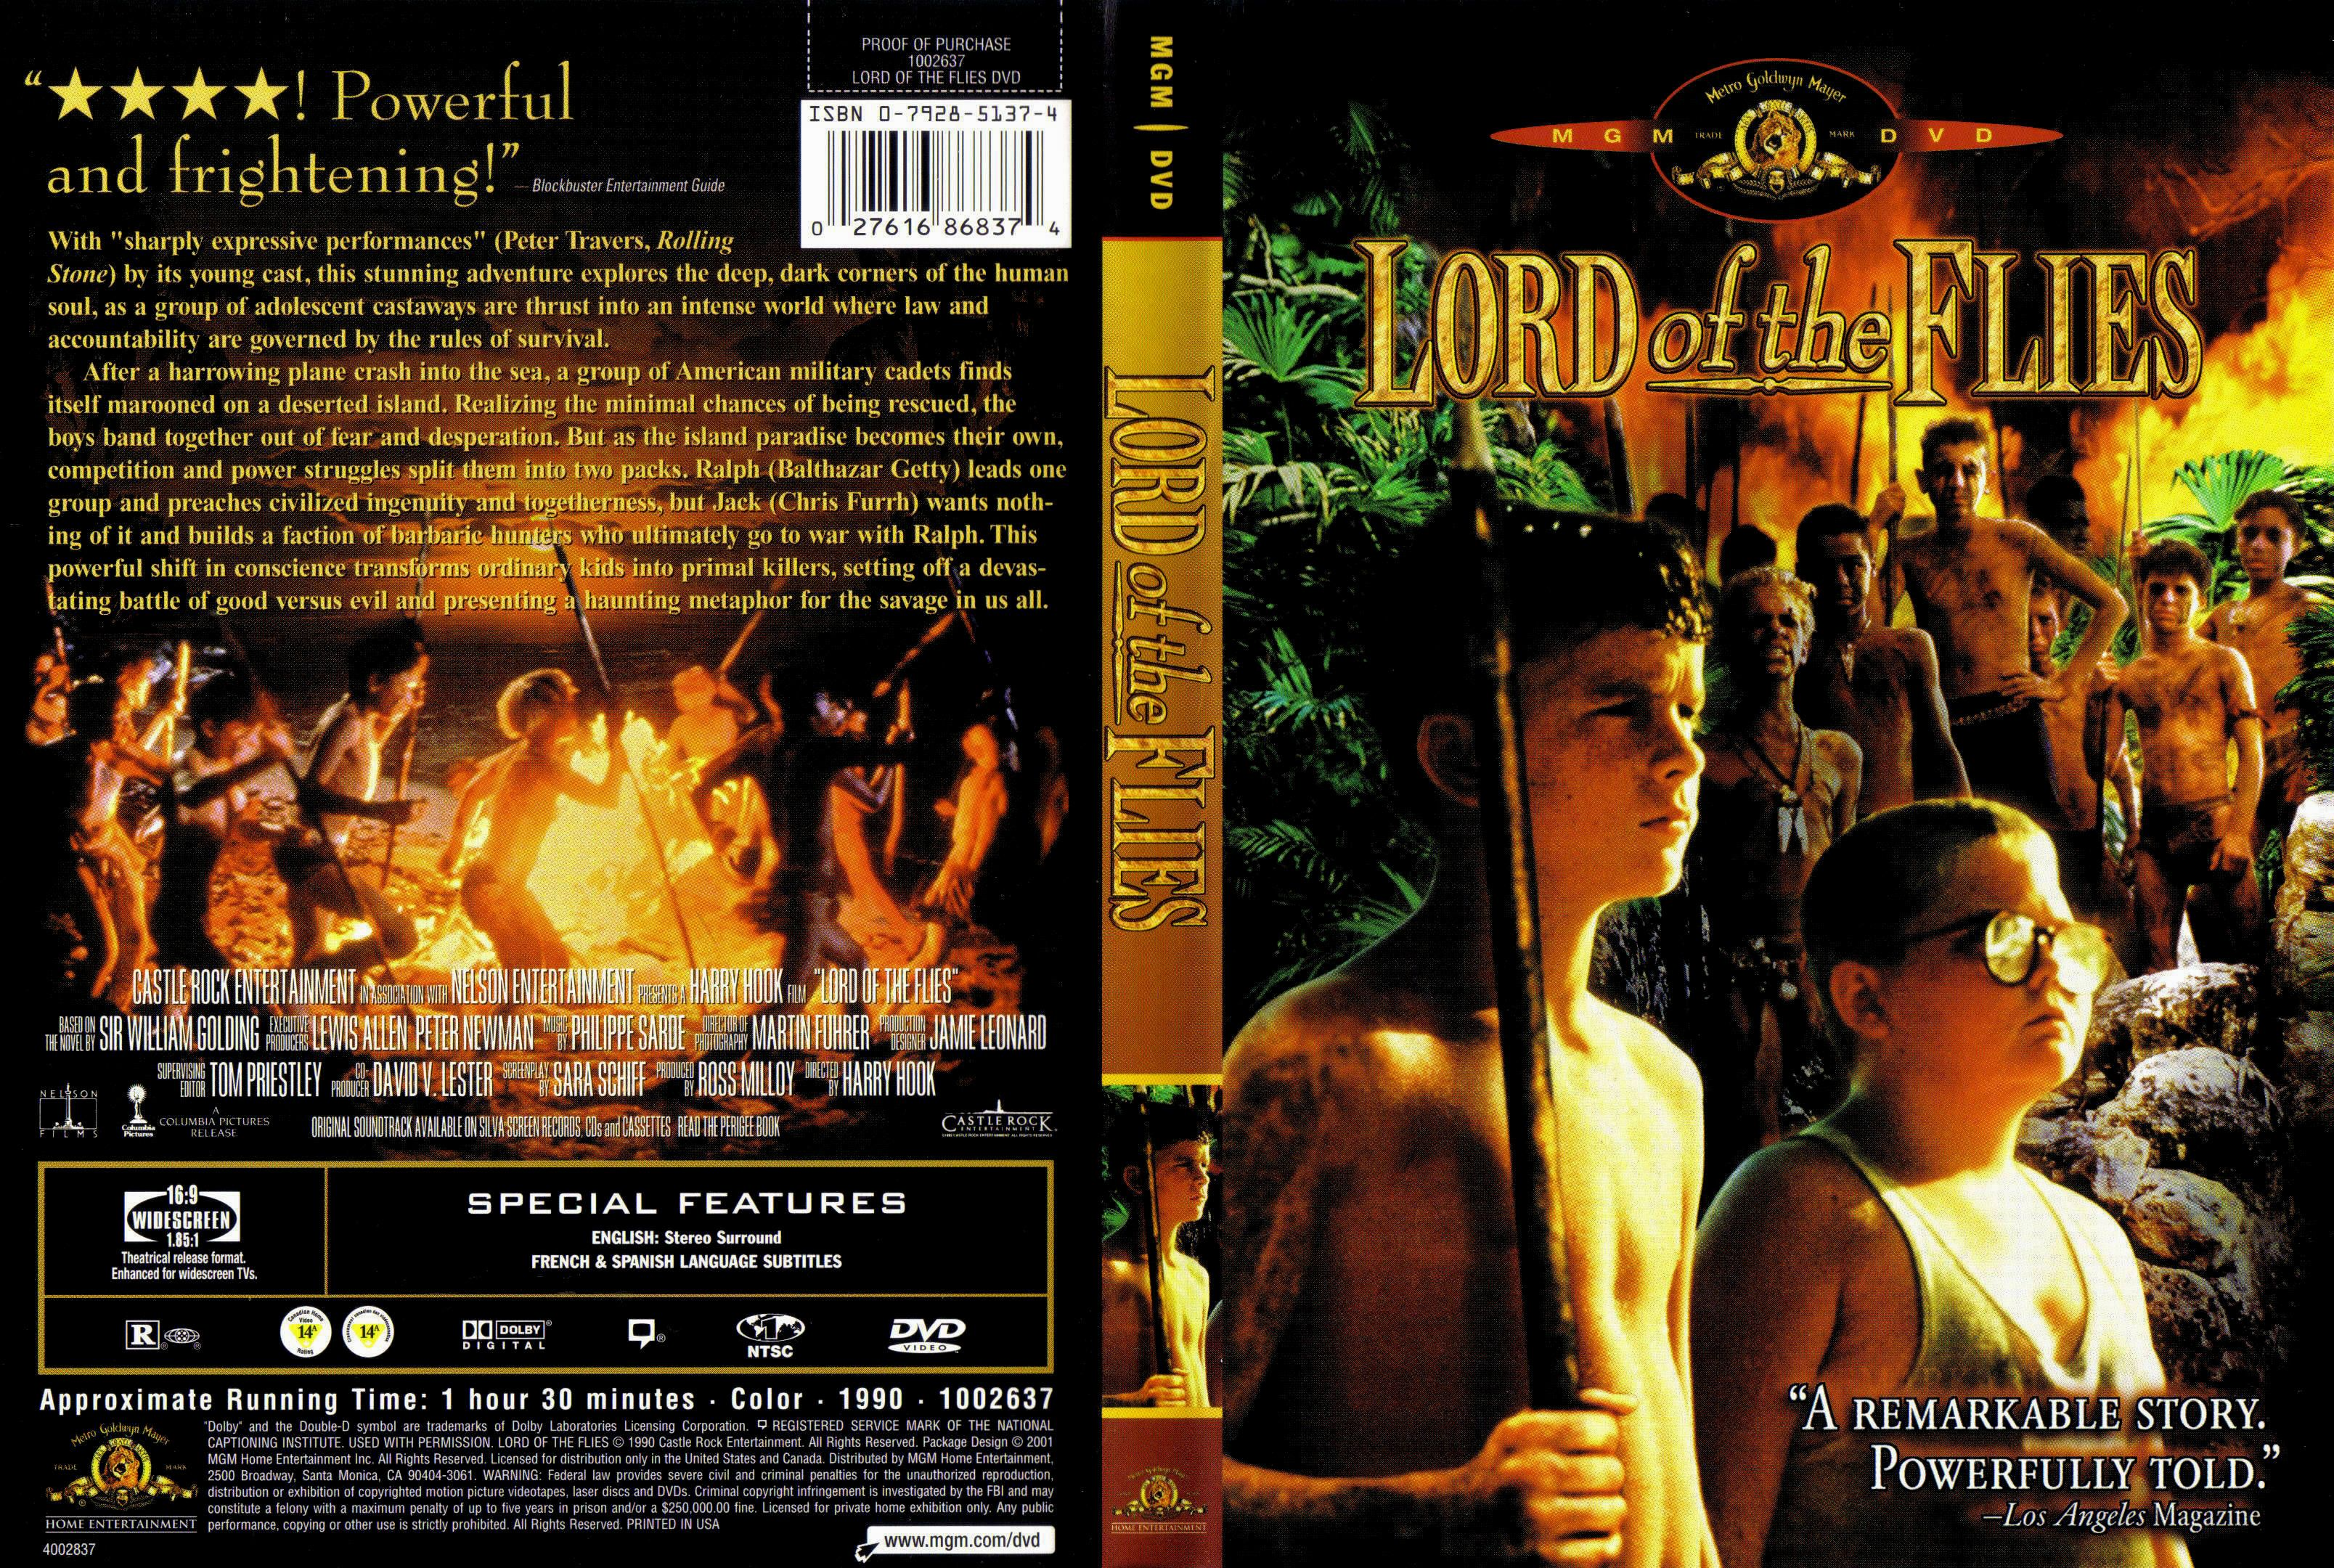 lord of the flies and king Lord of the flies is a 1954 novel by nobel prize-winning british author william golding stephen king wrote an introduction for a new edition of lord of the flies.